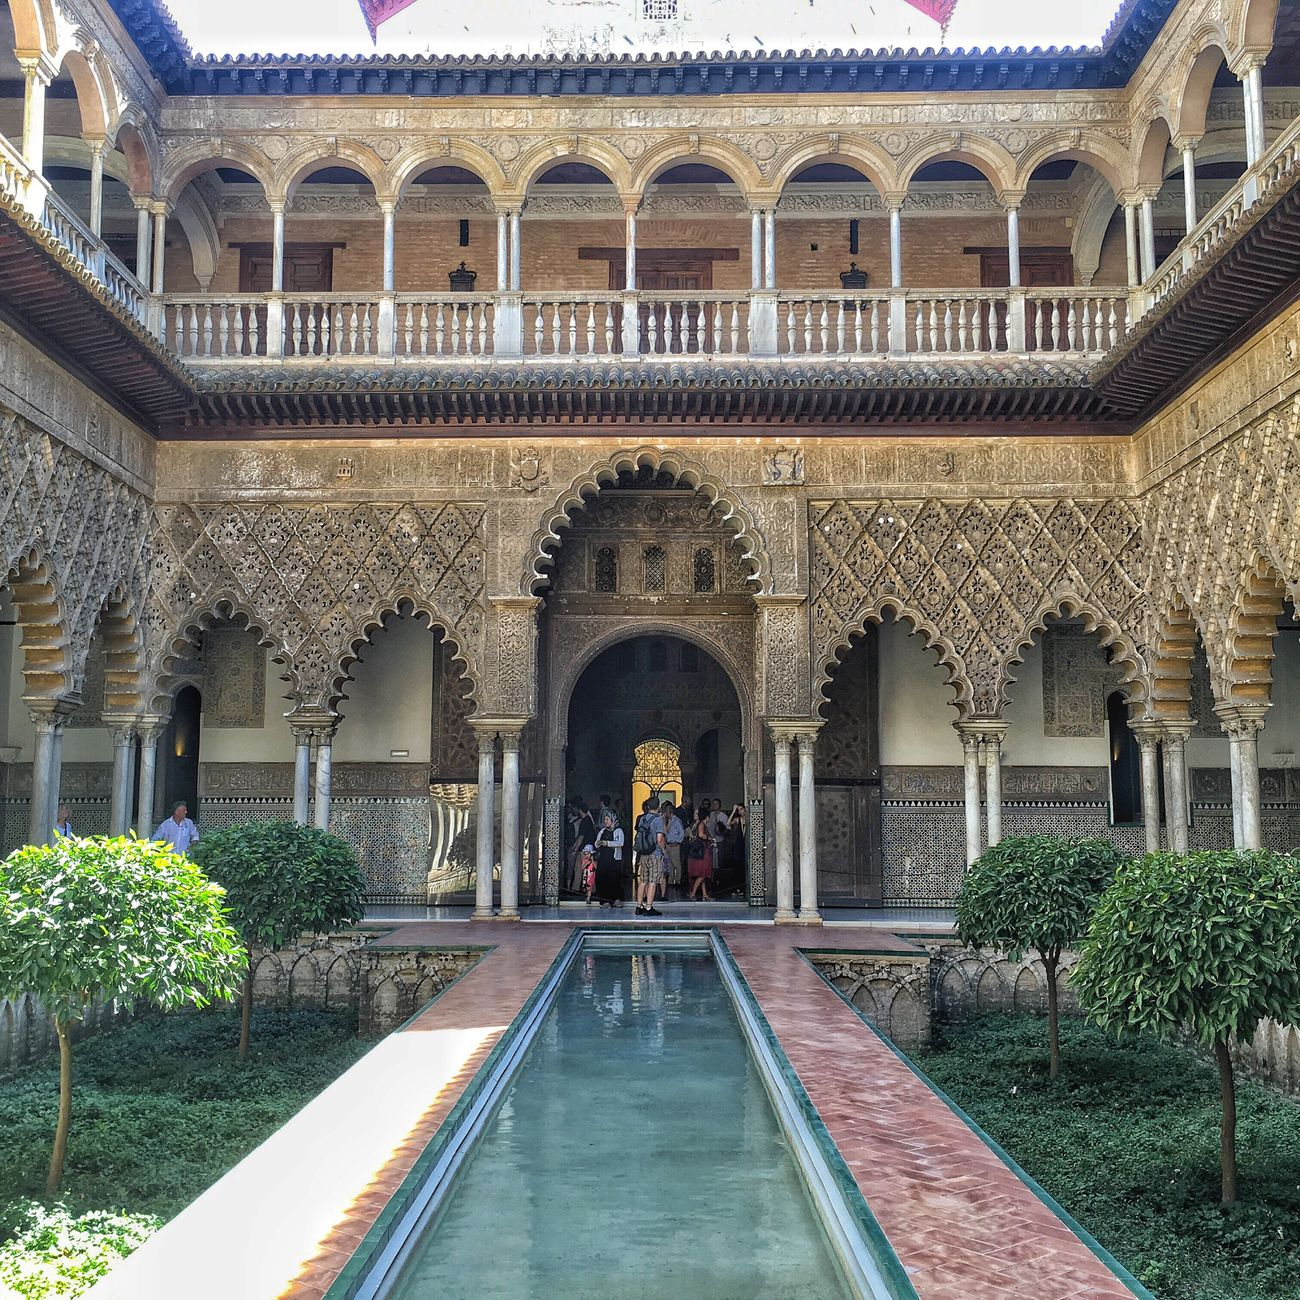 Alcazar Architecture Moorish Mudéjar Royal Palace Courtyard of the Maidens SPAIN